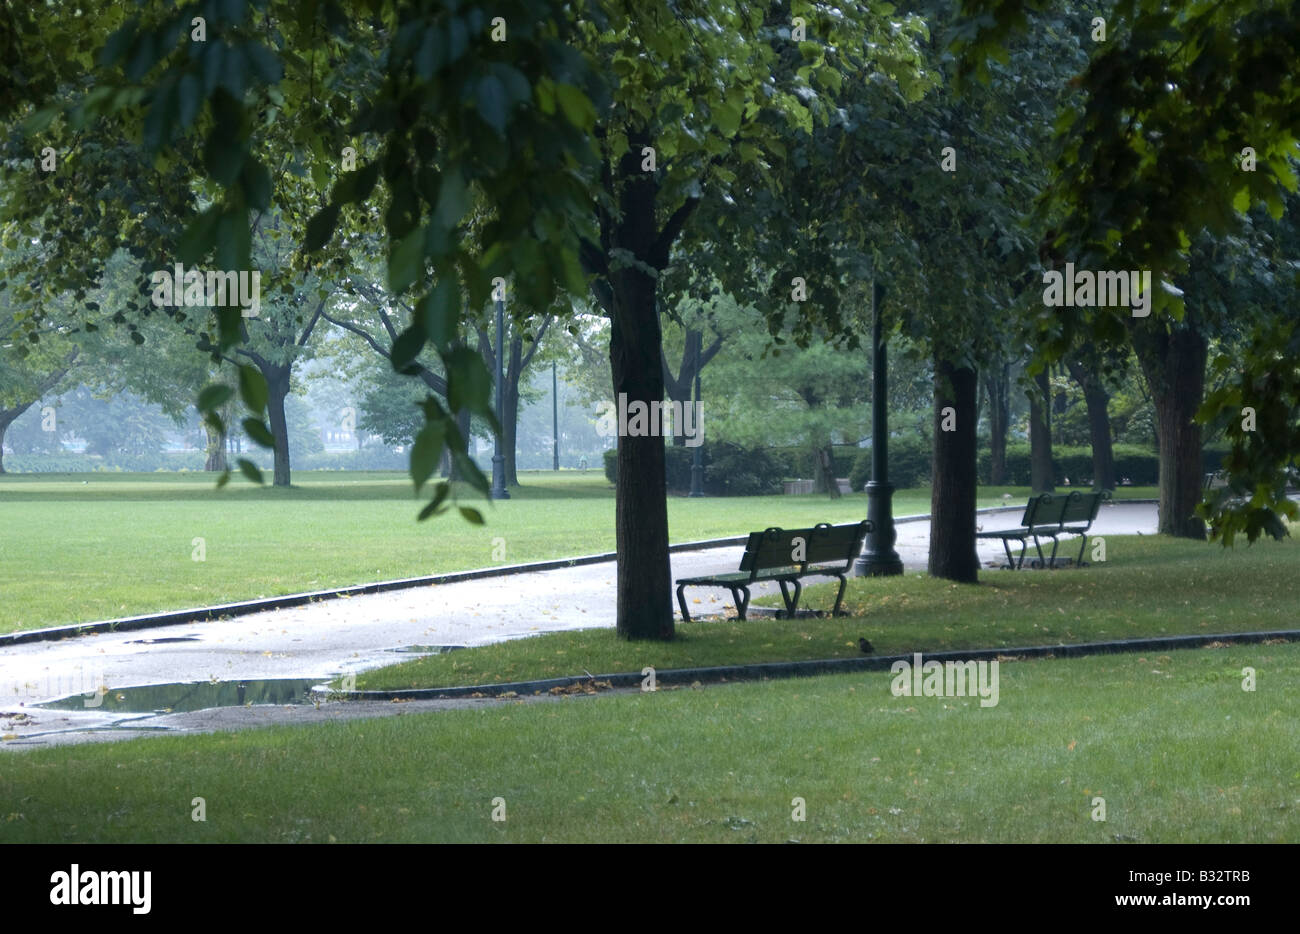 John Fitzgerald Kennedy Park in Harvard, Cambridge, Massachusetts, USA - Stock Image